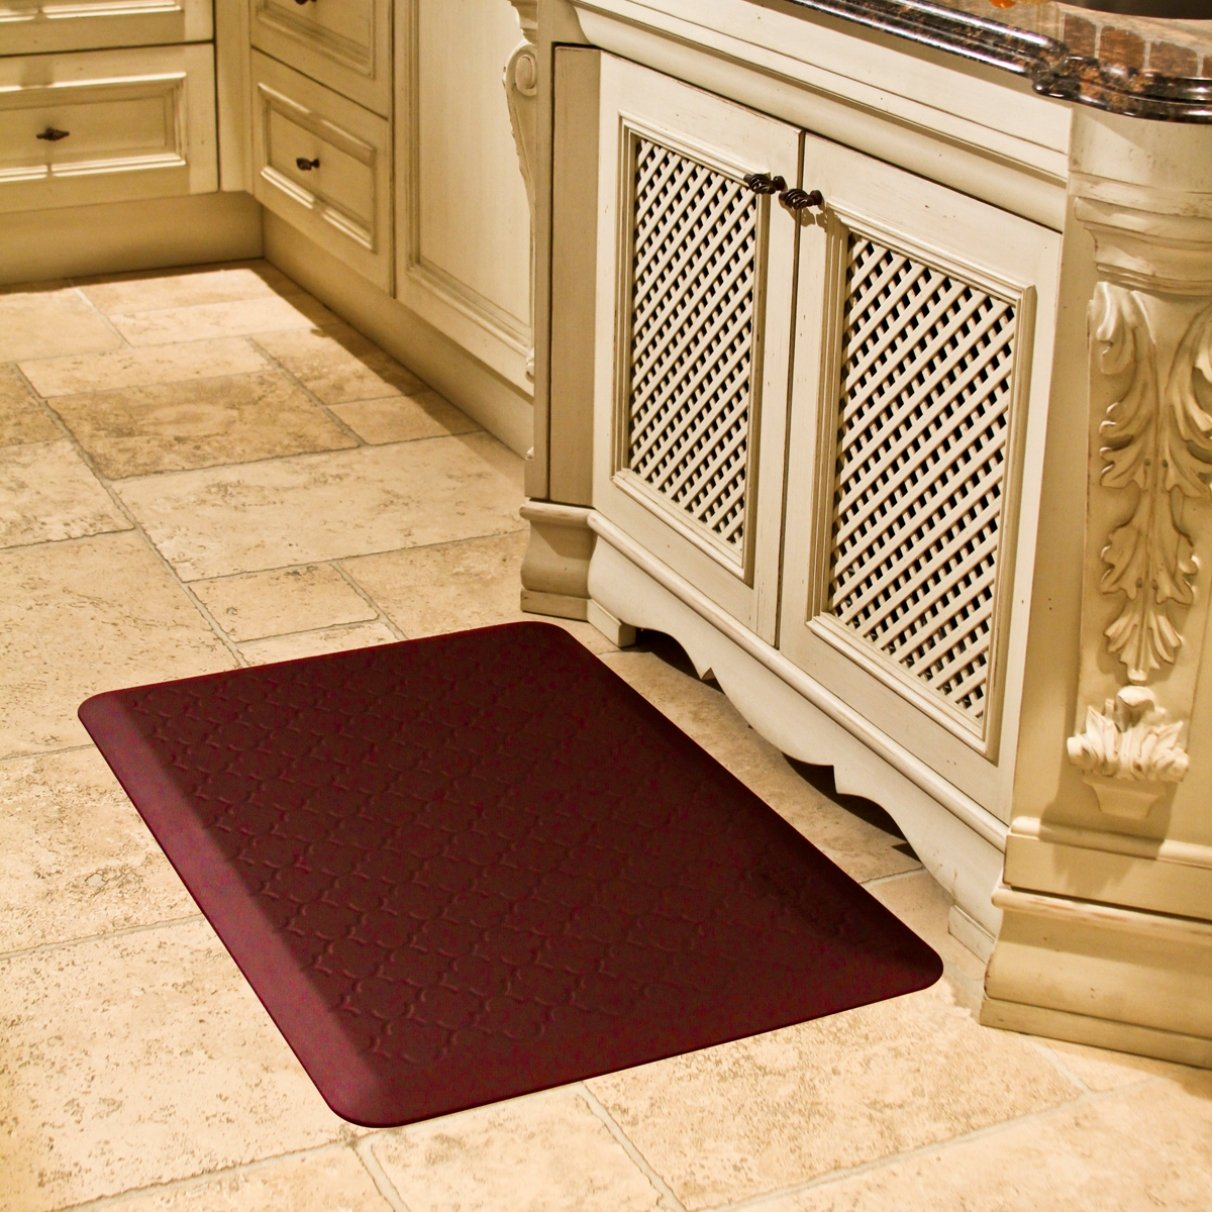 kitchen fatigue jr floor floormatshop mat anti tek tough